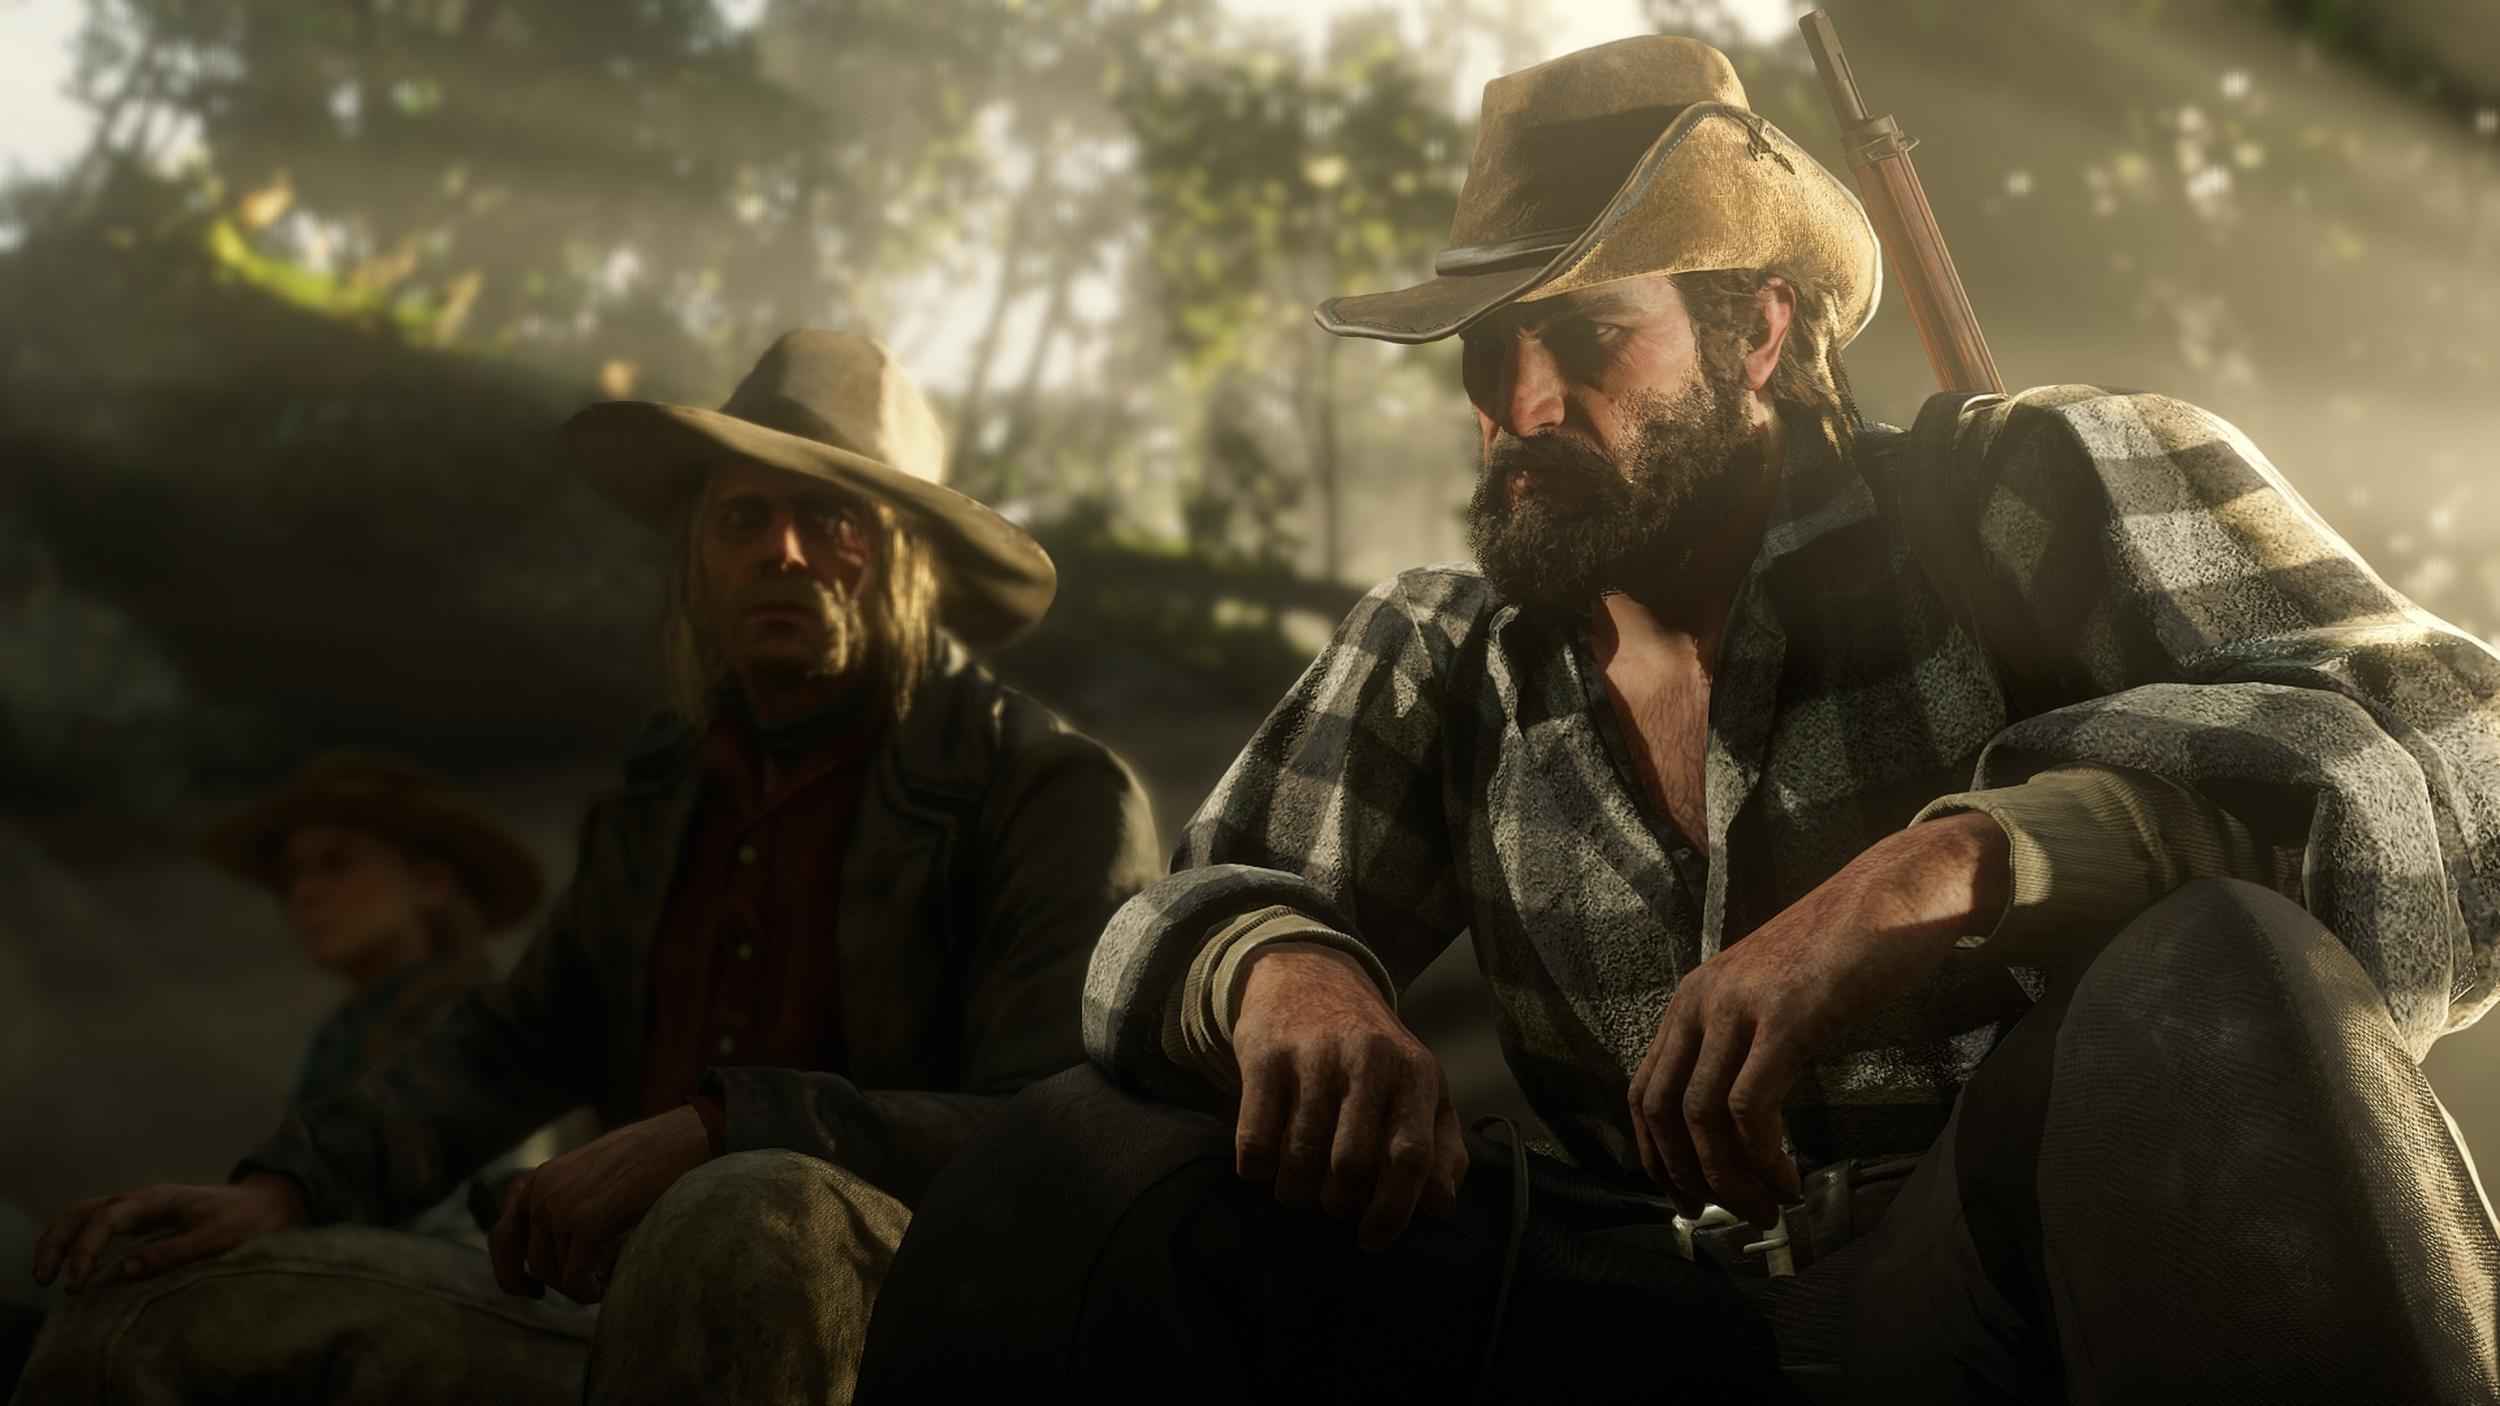 Red Dead Redemption 2: How to play without waiting for